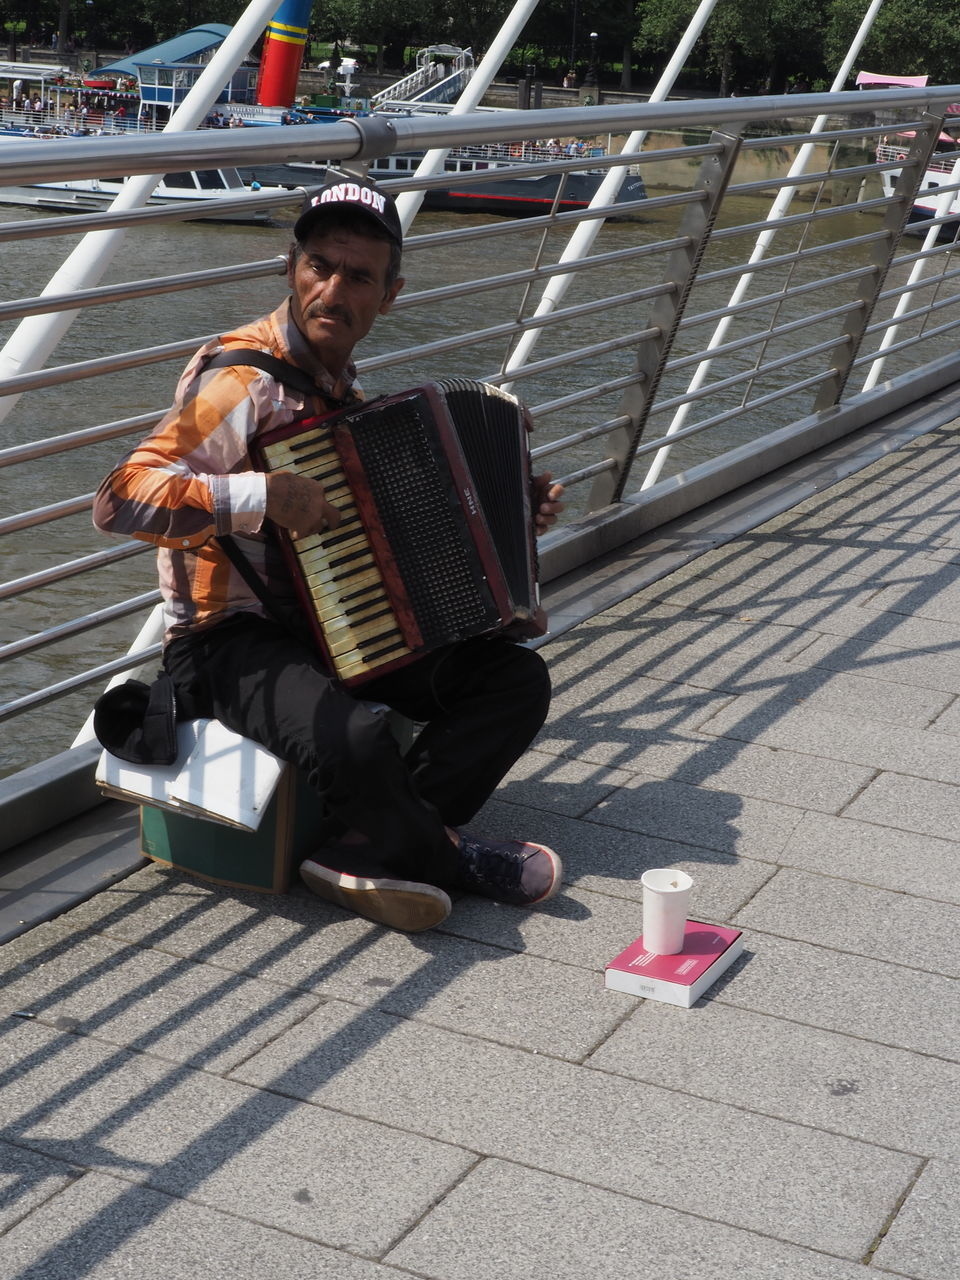 accordion, full length, real people, outdoors, one person, musical instrument, mid adult, playing, day, men, music, lifestyles, sunlight, sitting, musician, one man only, young adult, adult, adults only, people